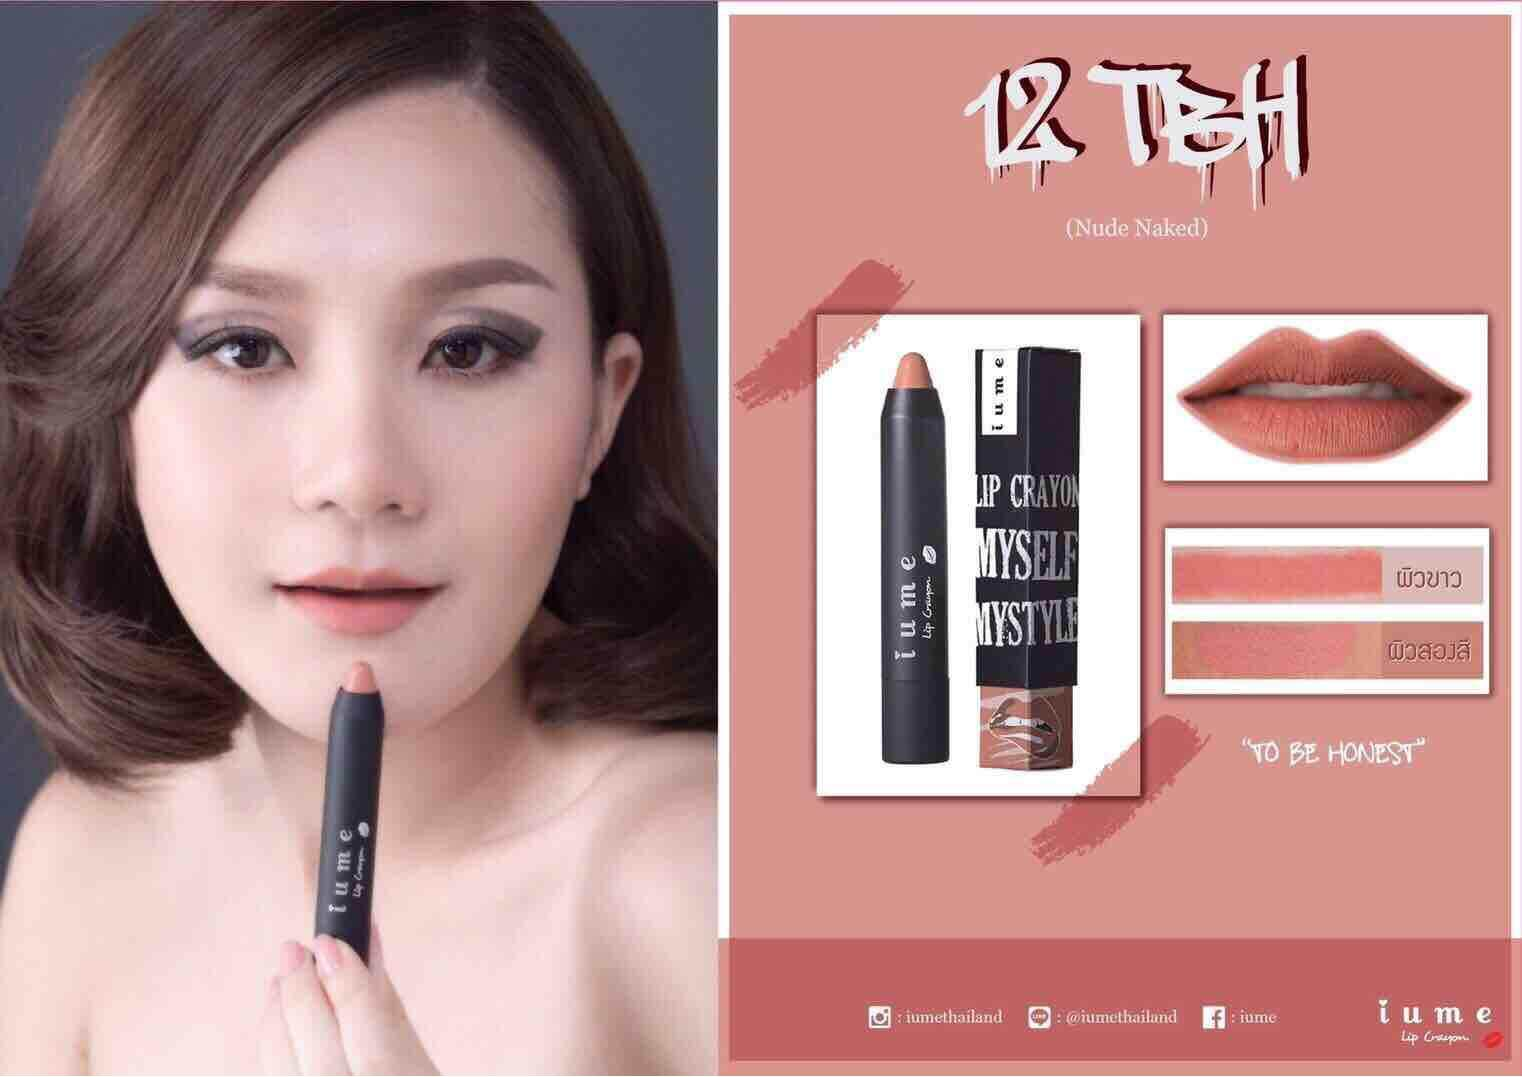 Iume Lip Crayon 12 Tbh By Iume.